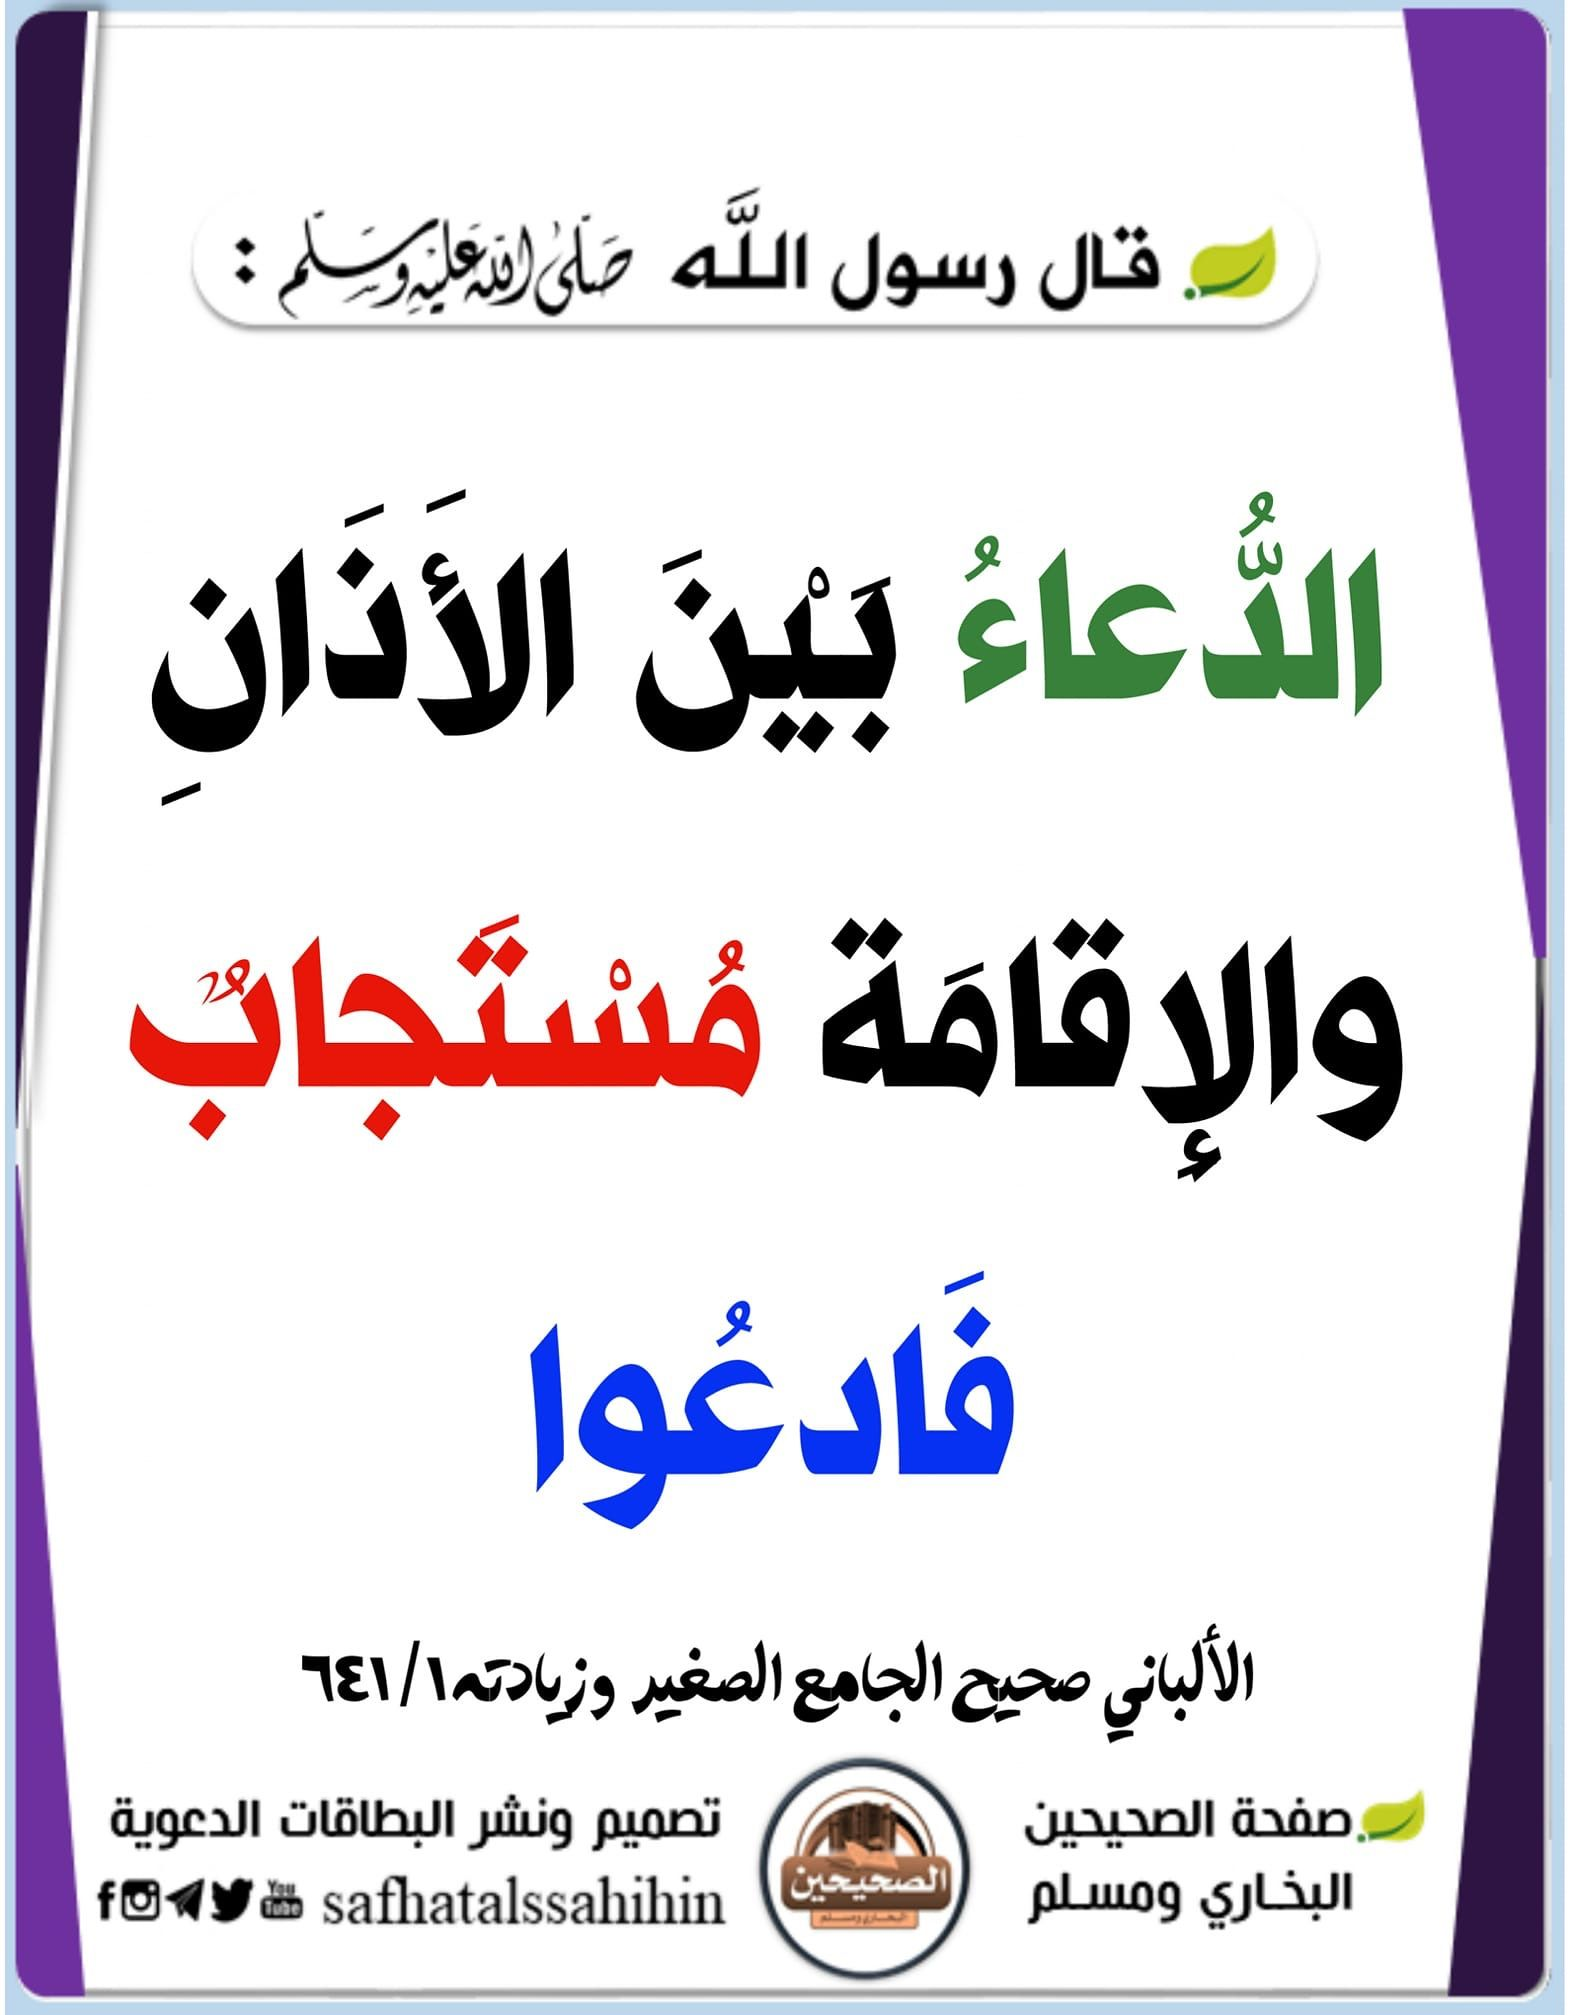 Pin By Miro Mar On الإسلام سلام Islam Is Peace Hadith Quotes Islamic Quotes Ahadith